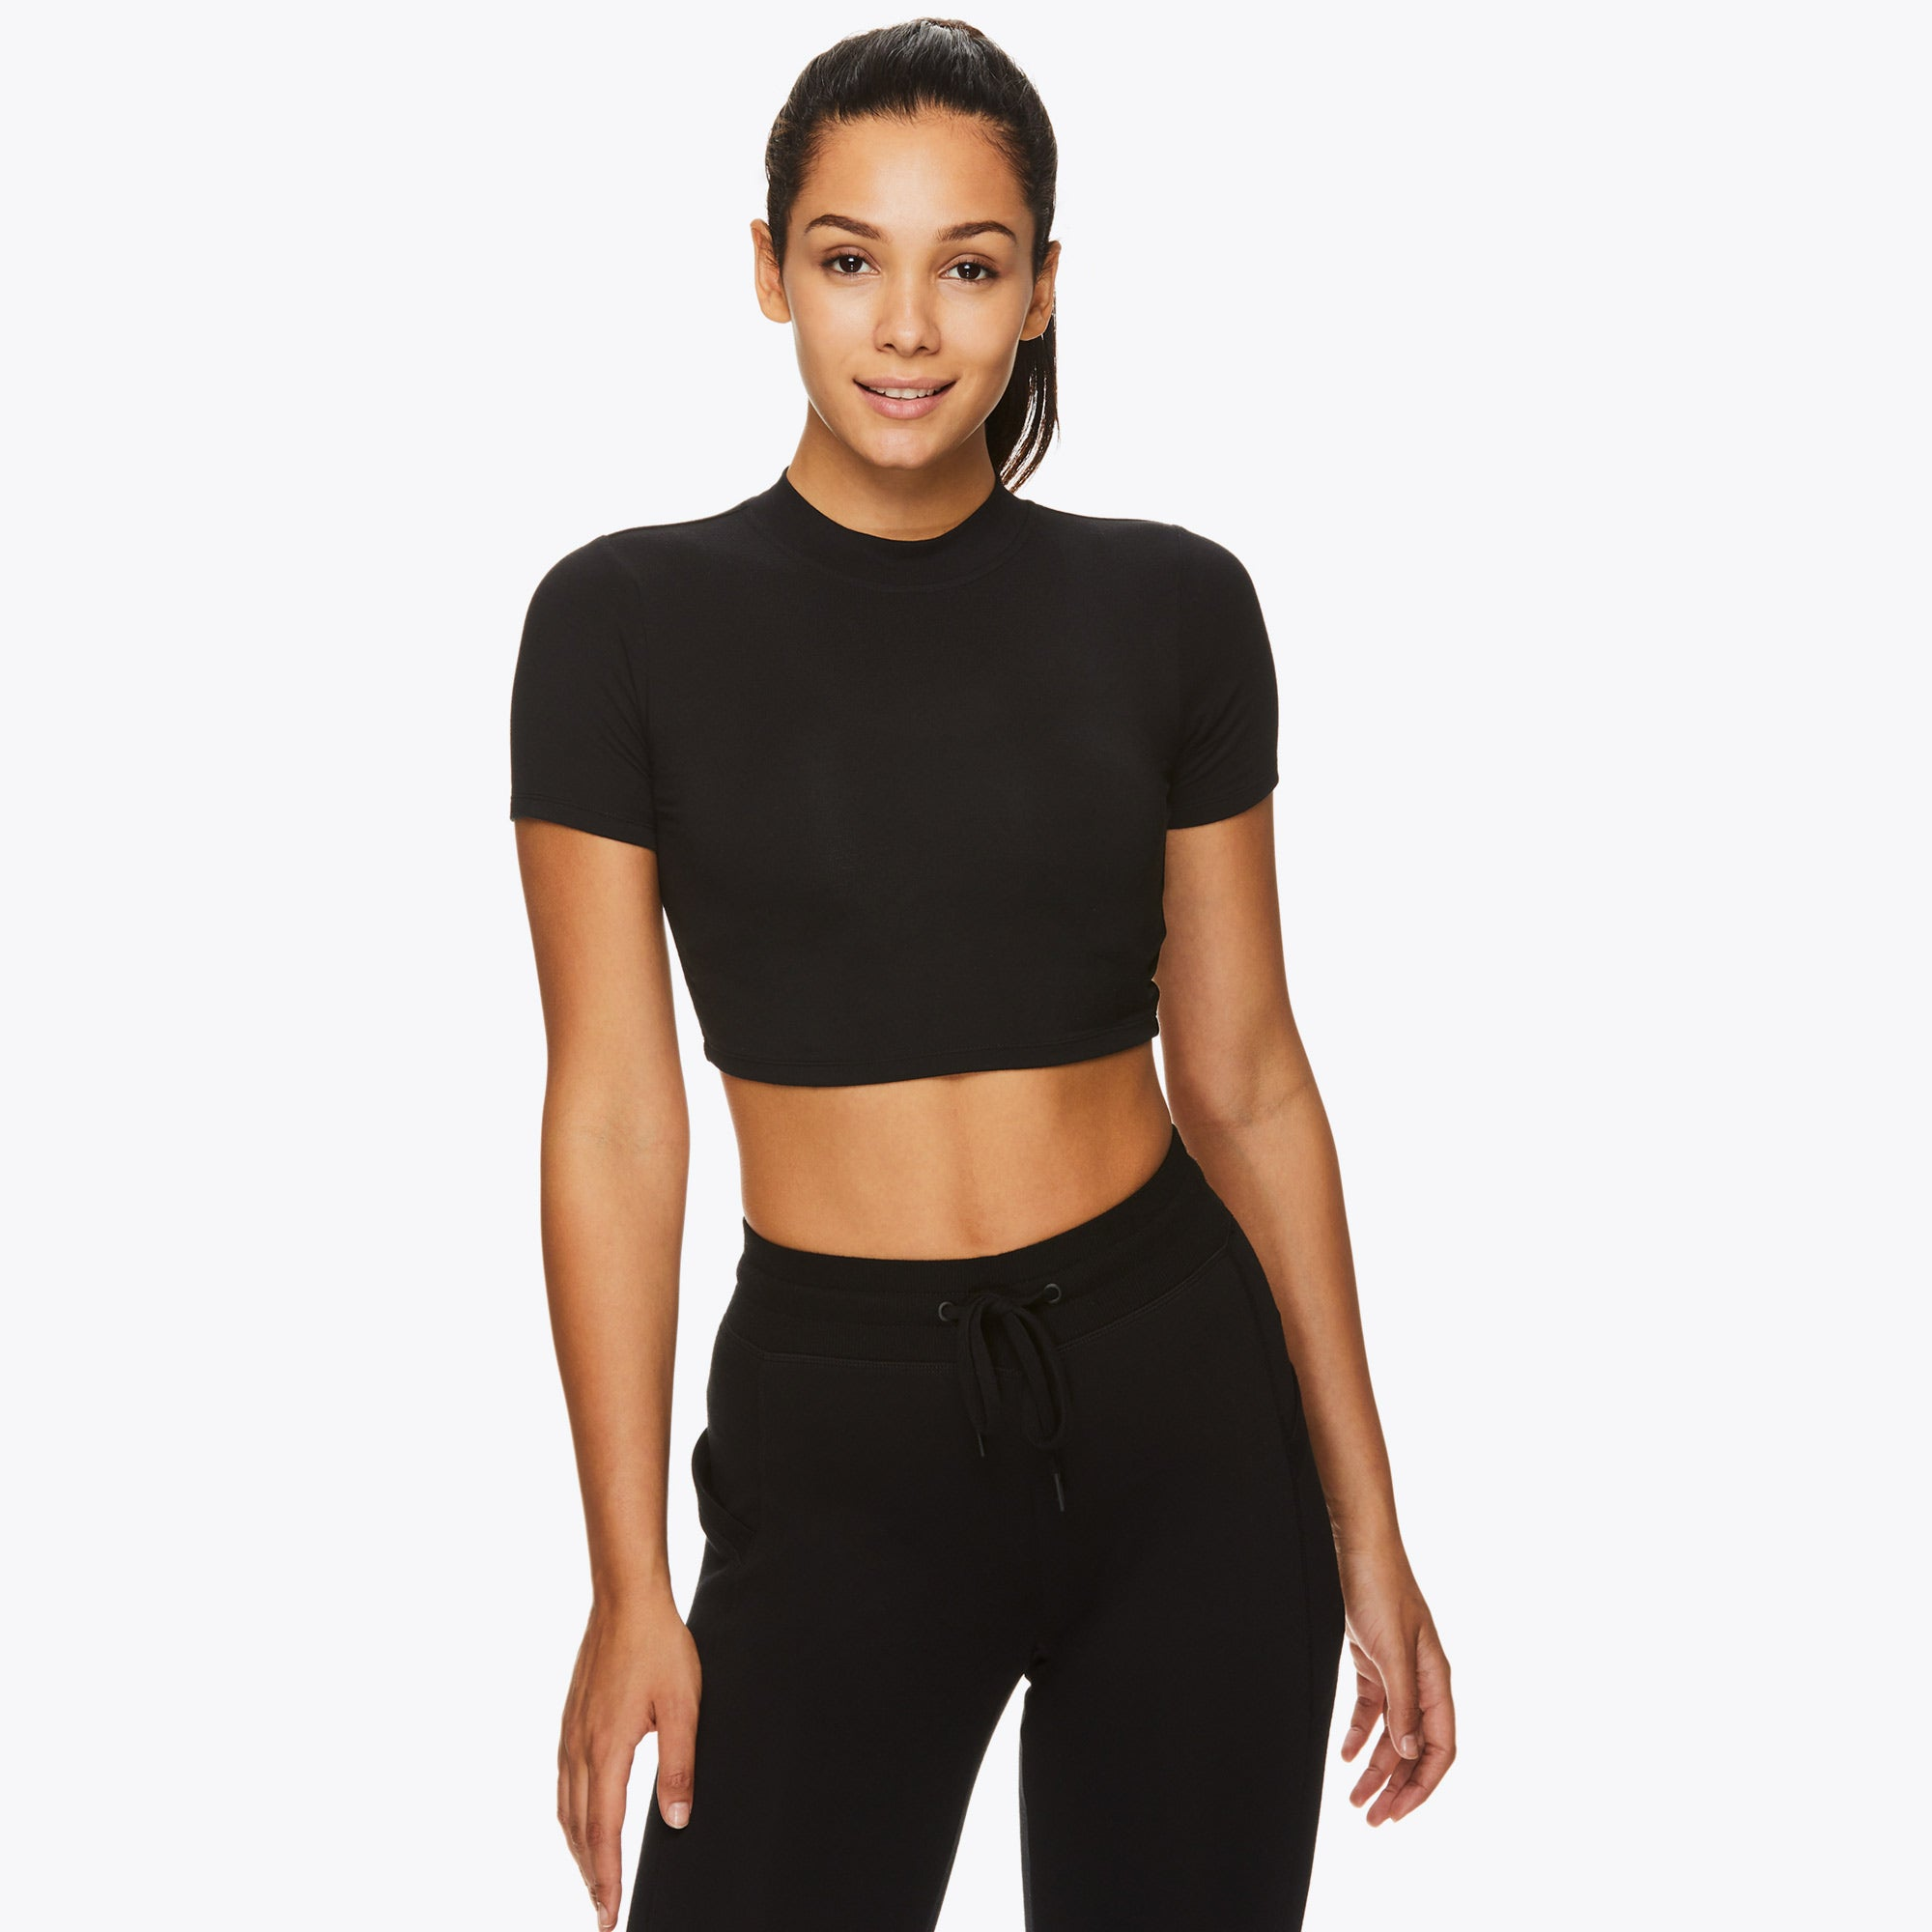 Image of Gaiam X Jessica Biel Gramercy Crop Top